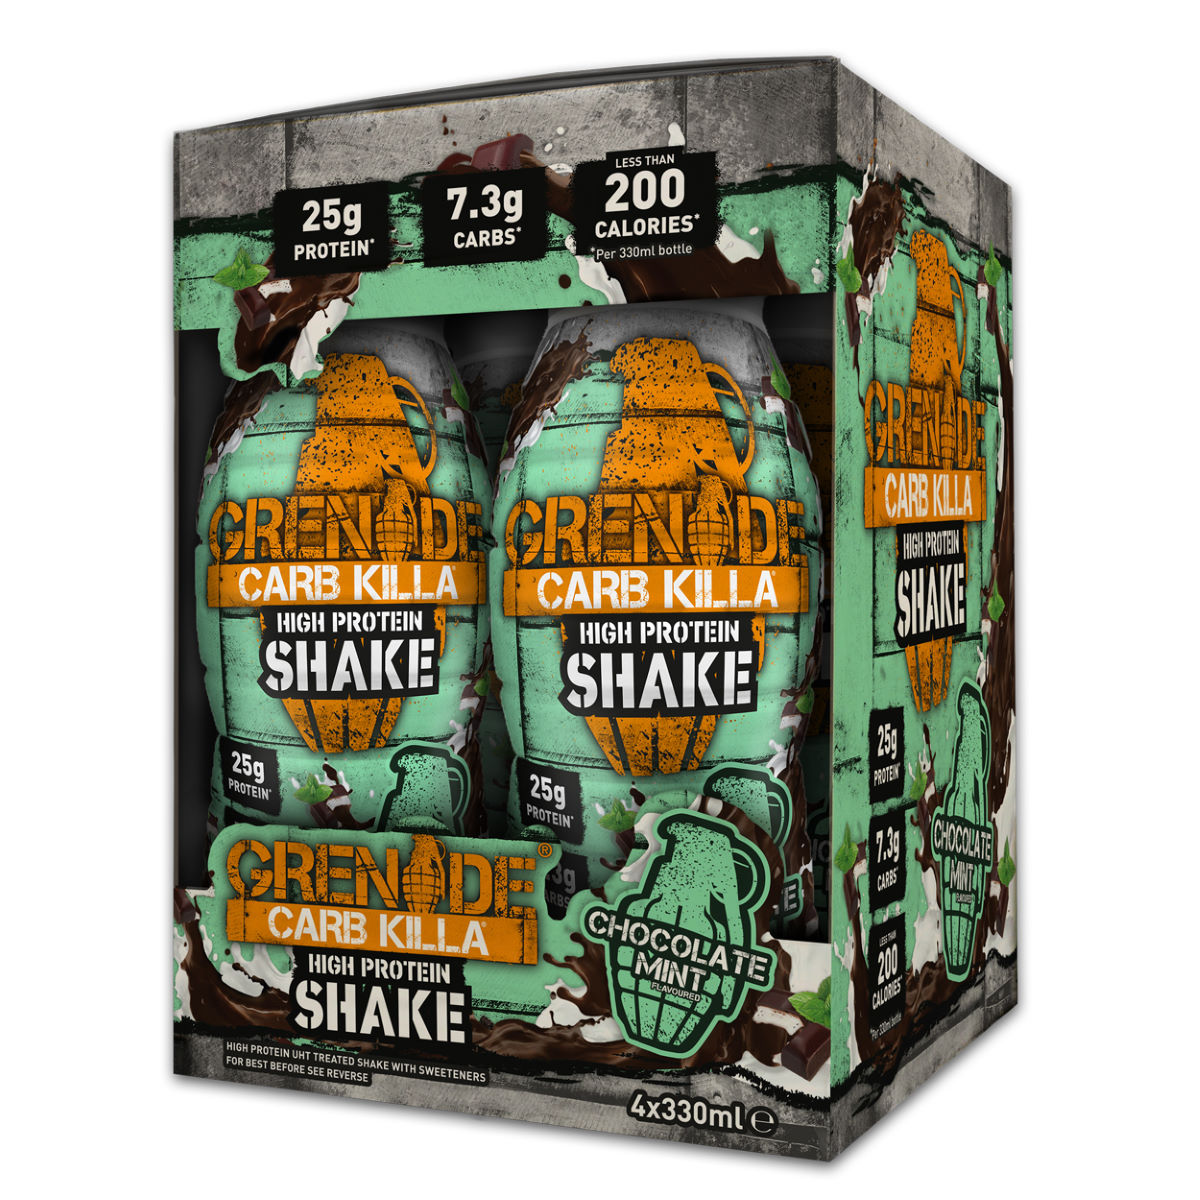 Shake Grenade Carb Killa High Protein - 330ml 4 Chocolate Mint